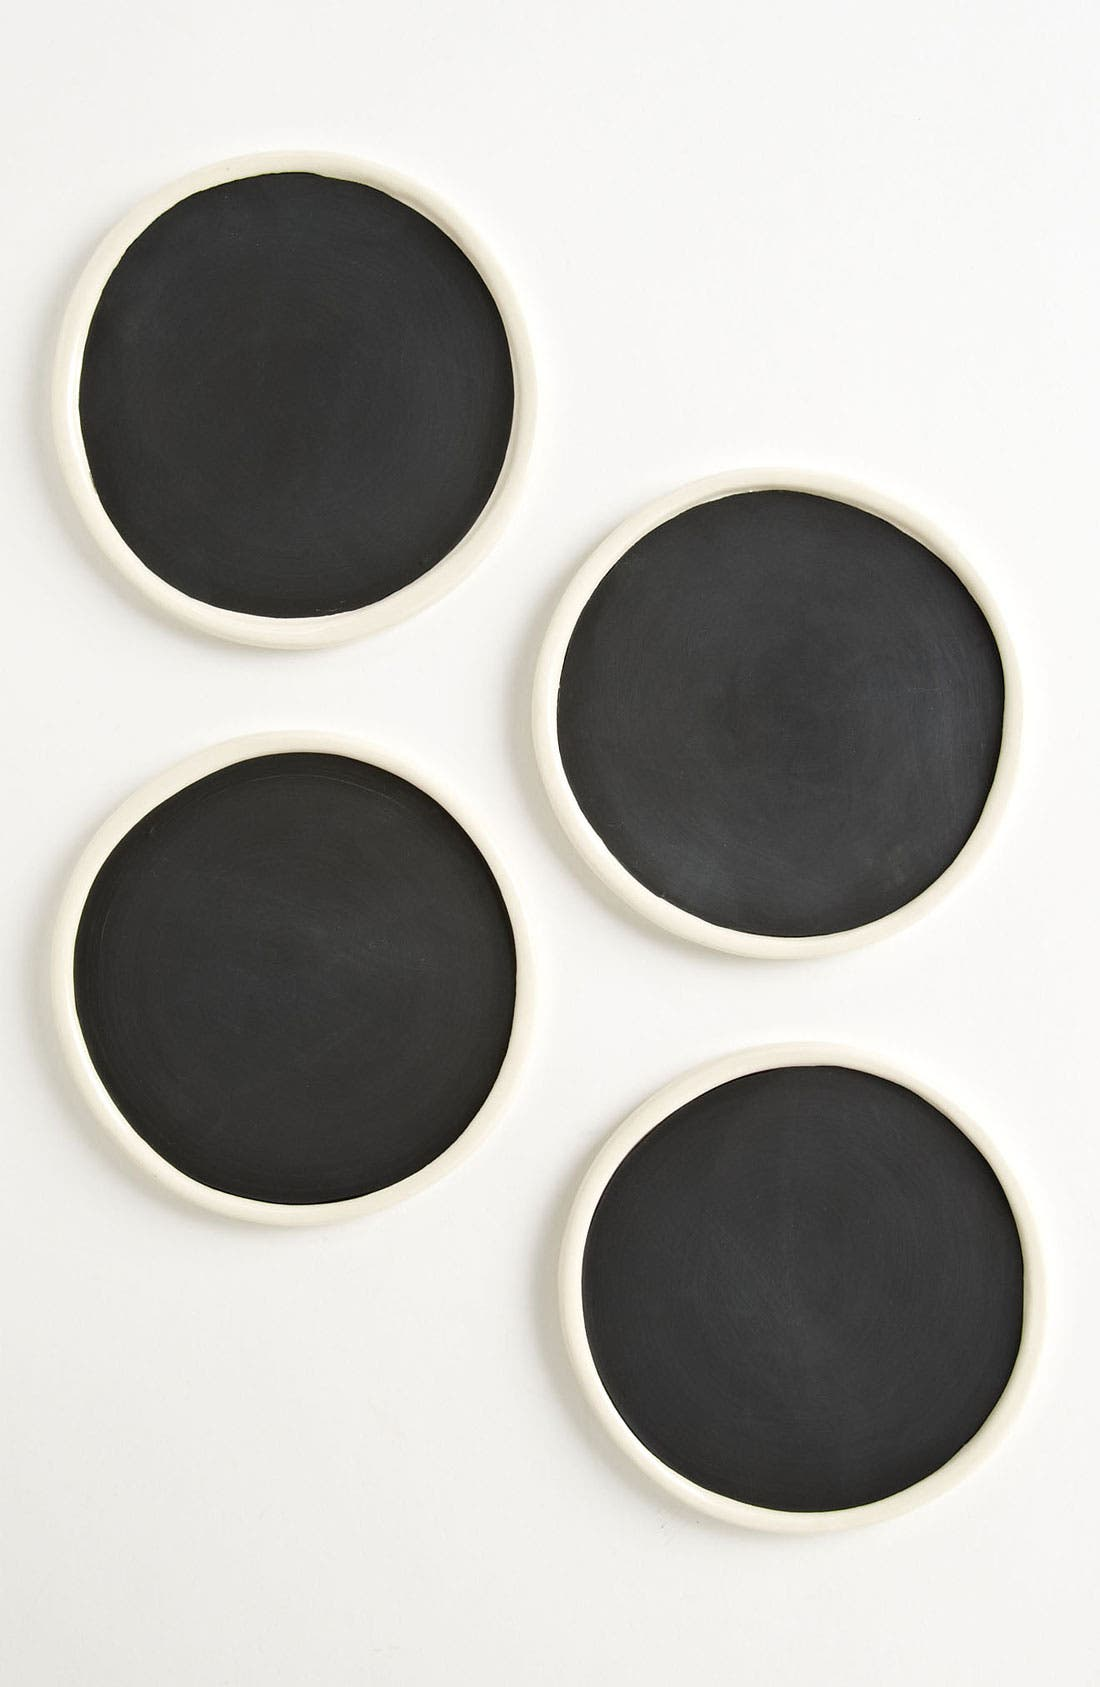 Main Image - Rae Dunn by Magenta 'Take Note' Chalkboard Coasters (Set of 4)